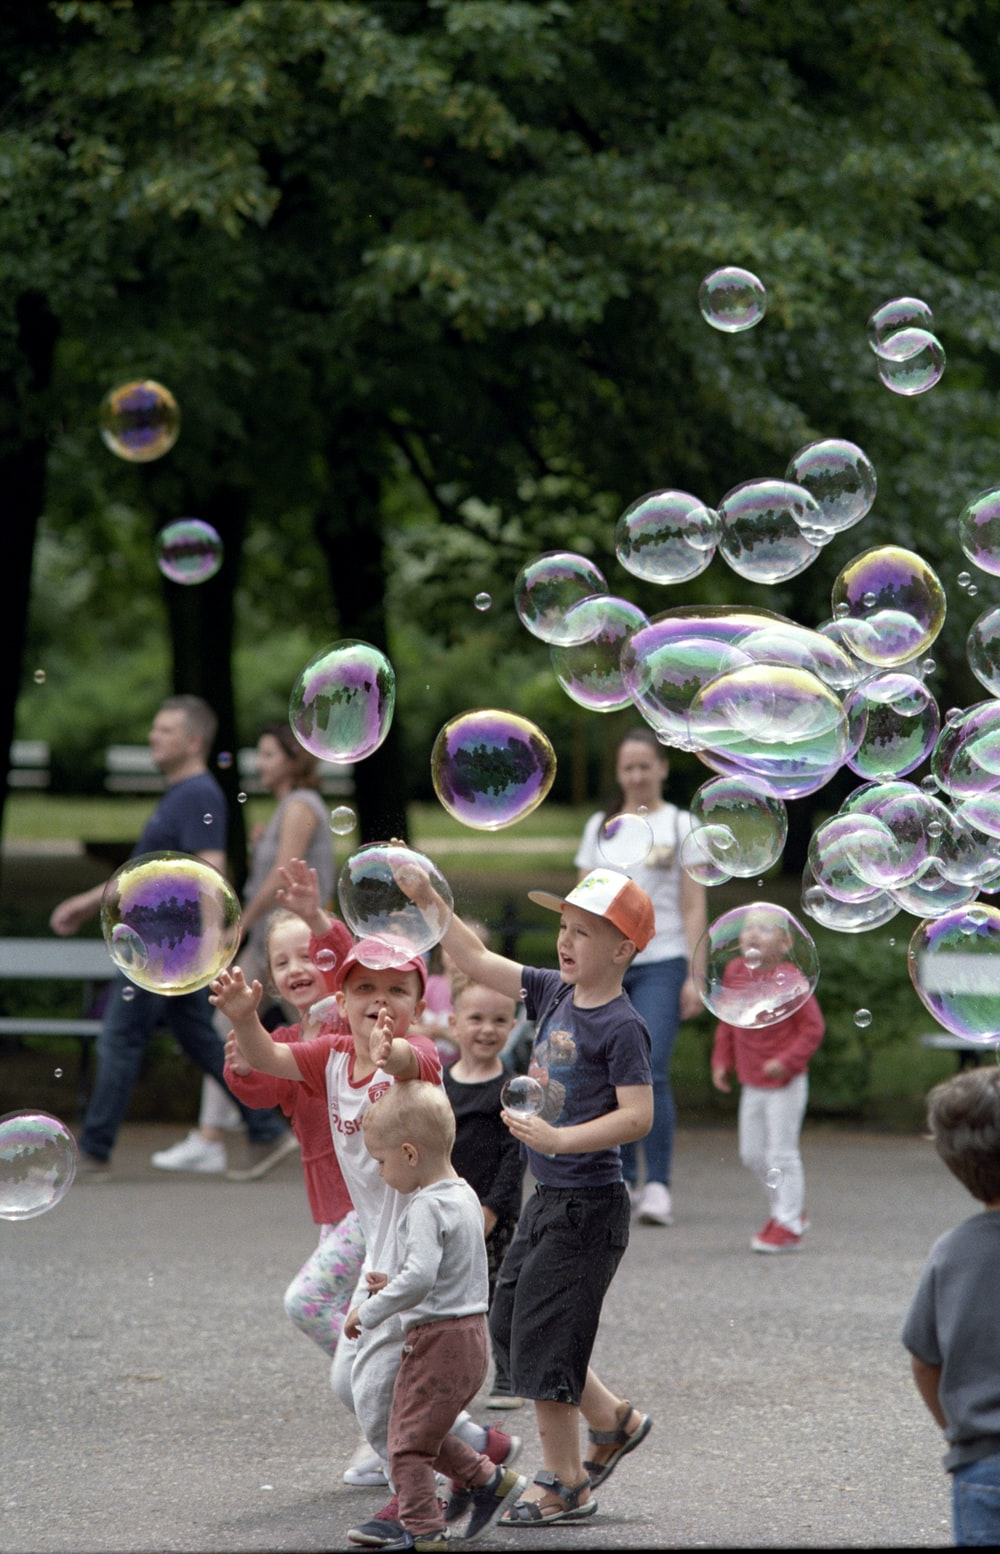 children playing bubbles during daytime